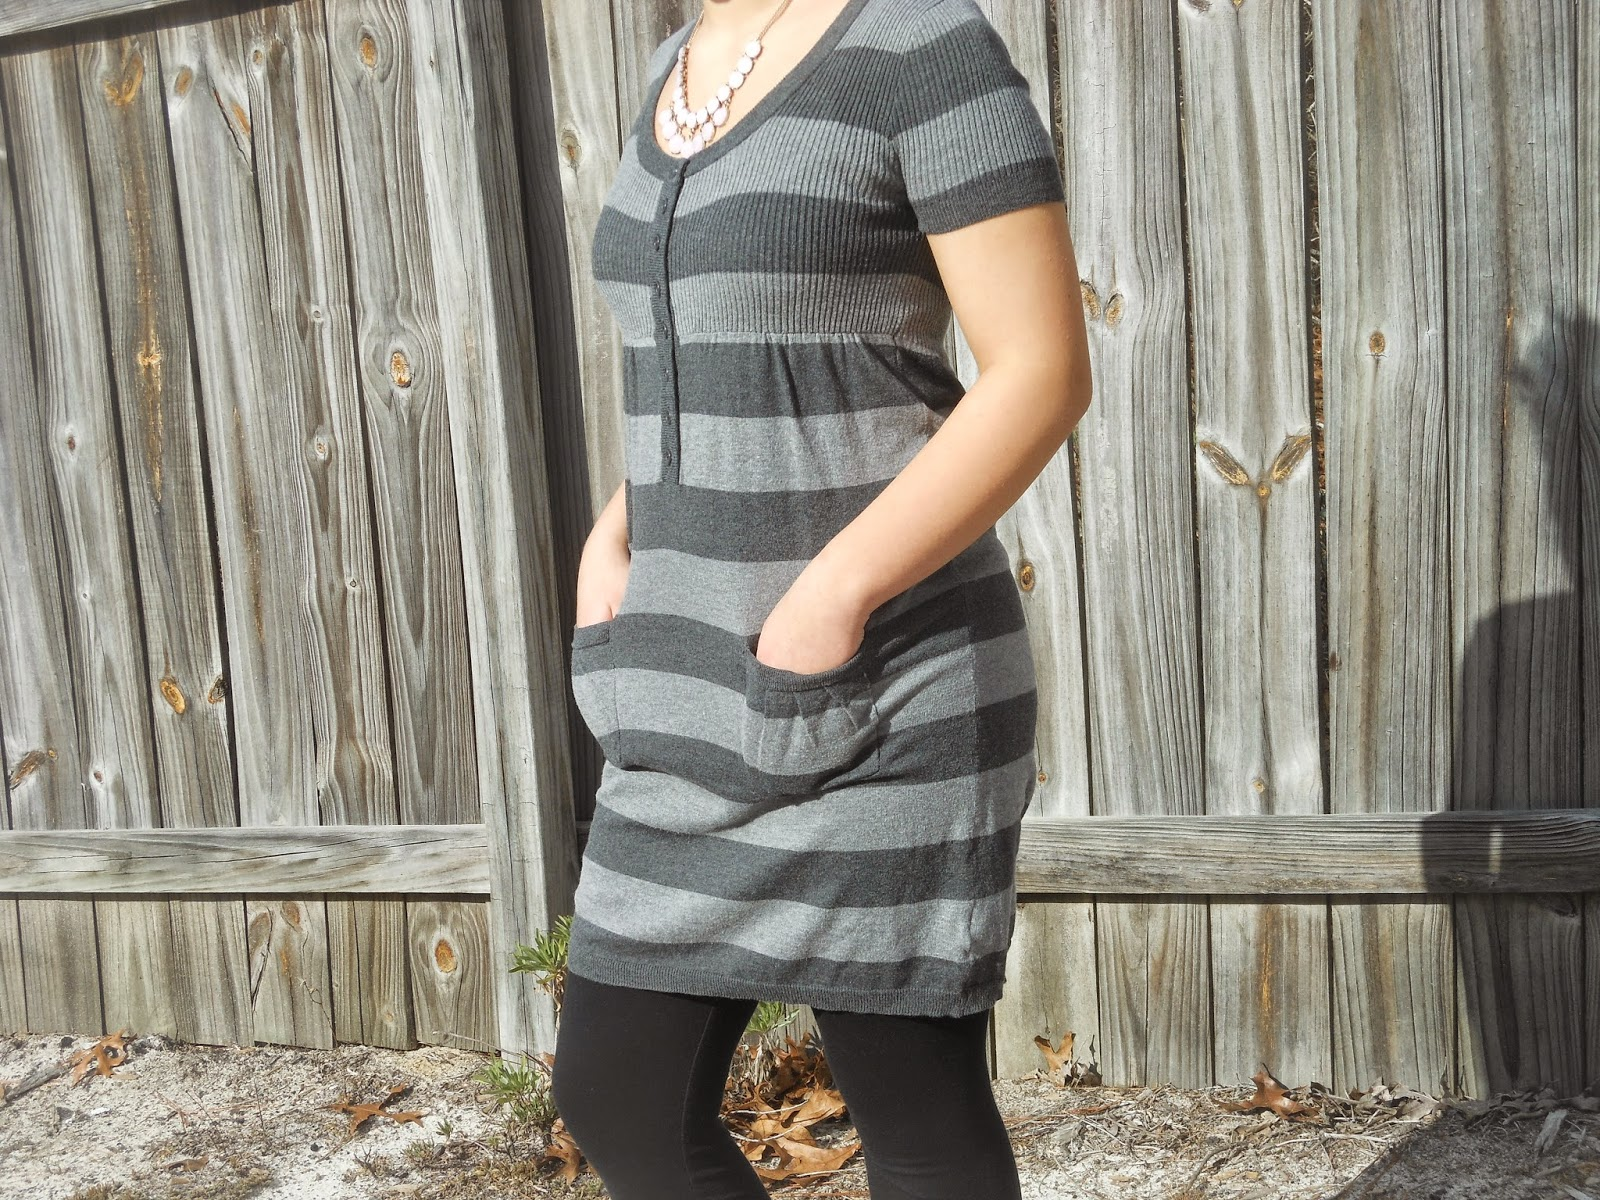 How to Wear a Dress in Winter || 05. Grey sweater dress, black leggings, black ankle boots, statement necklace.